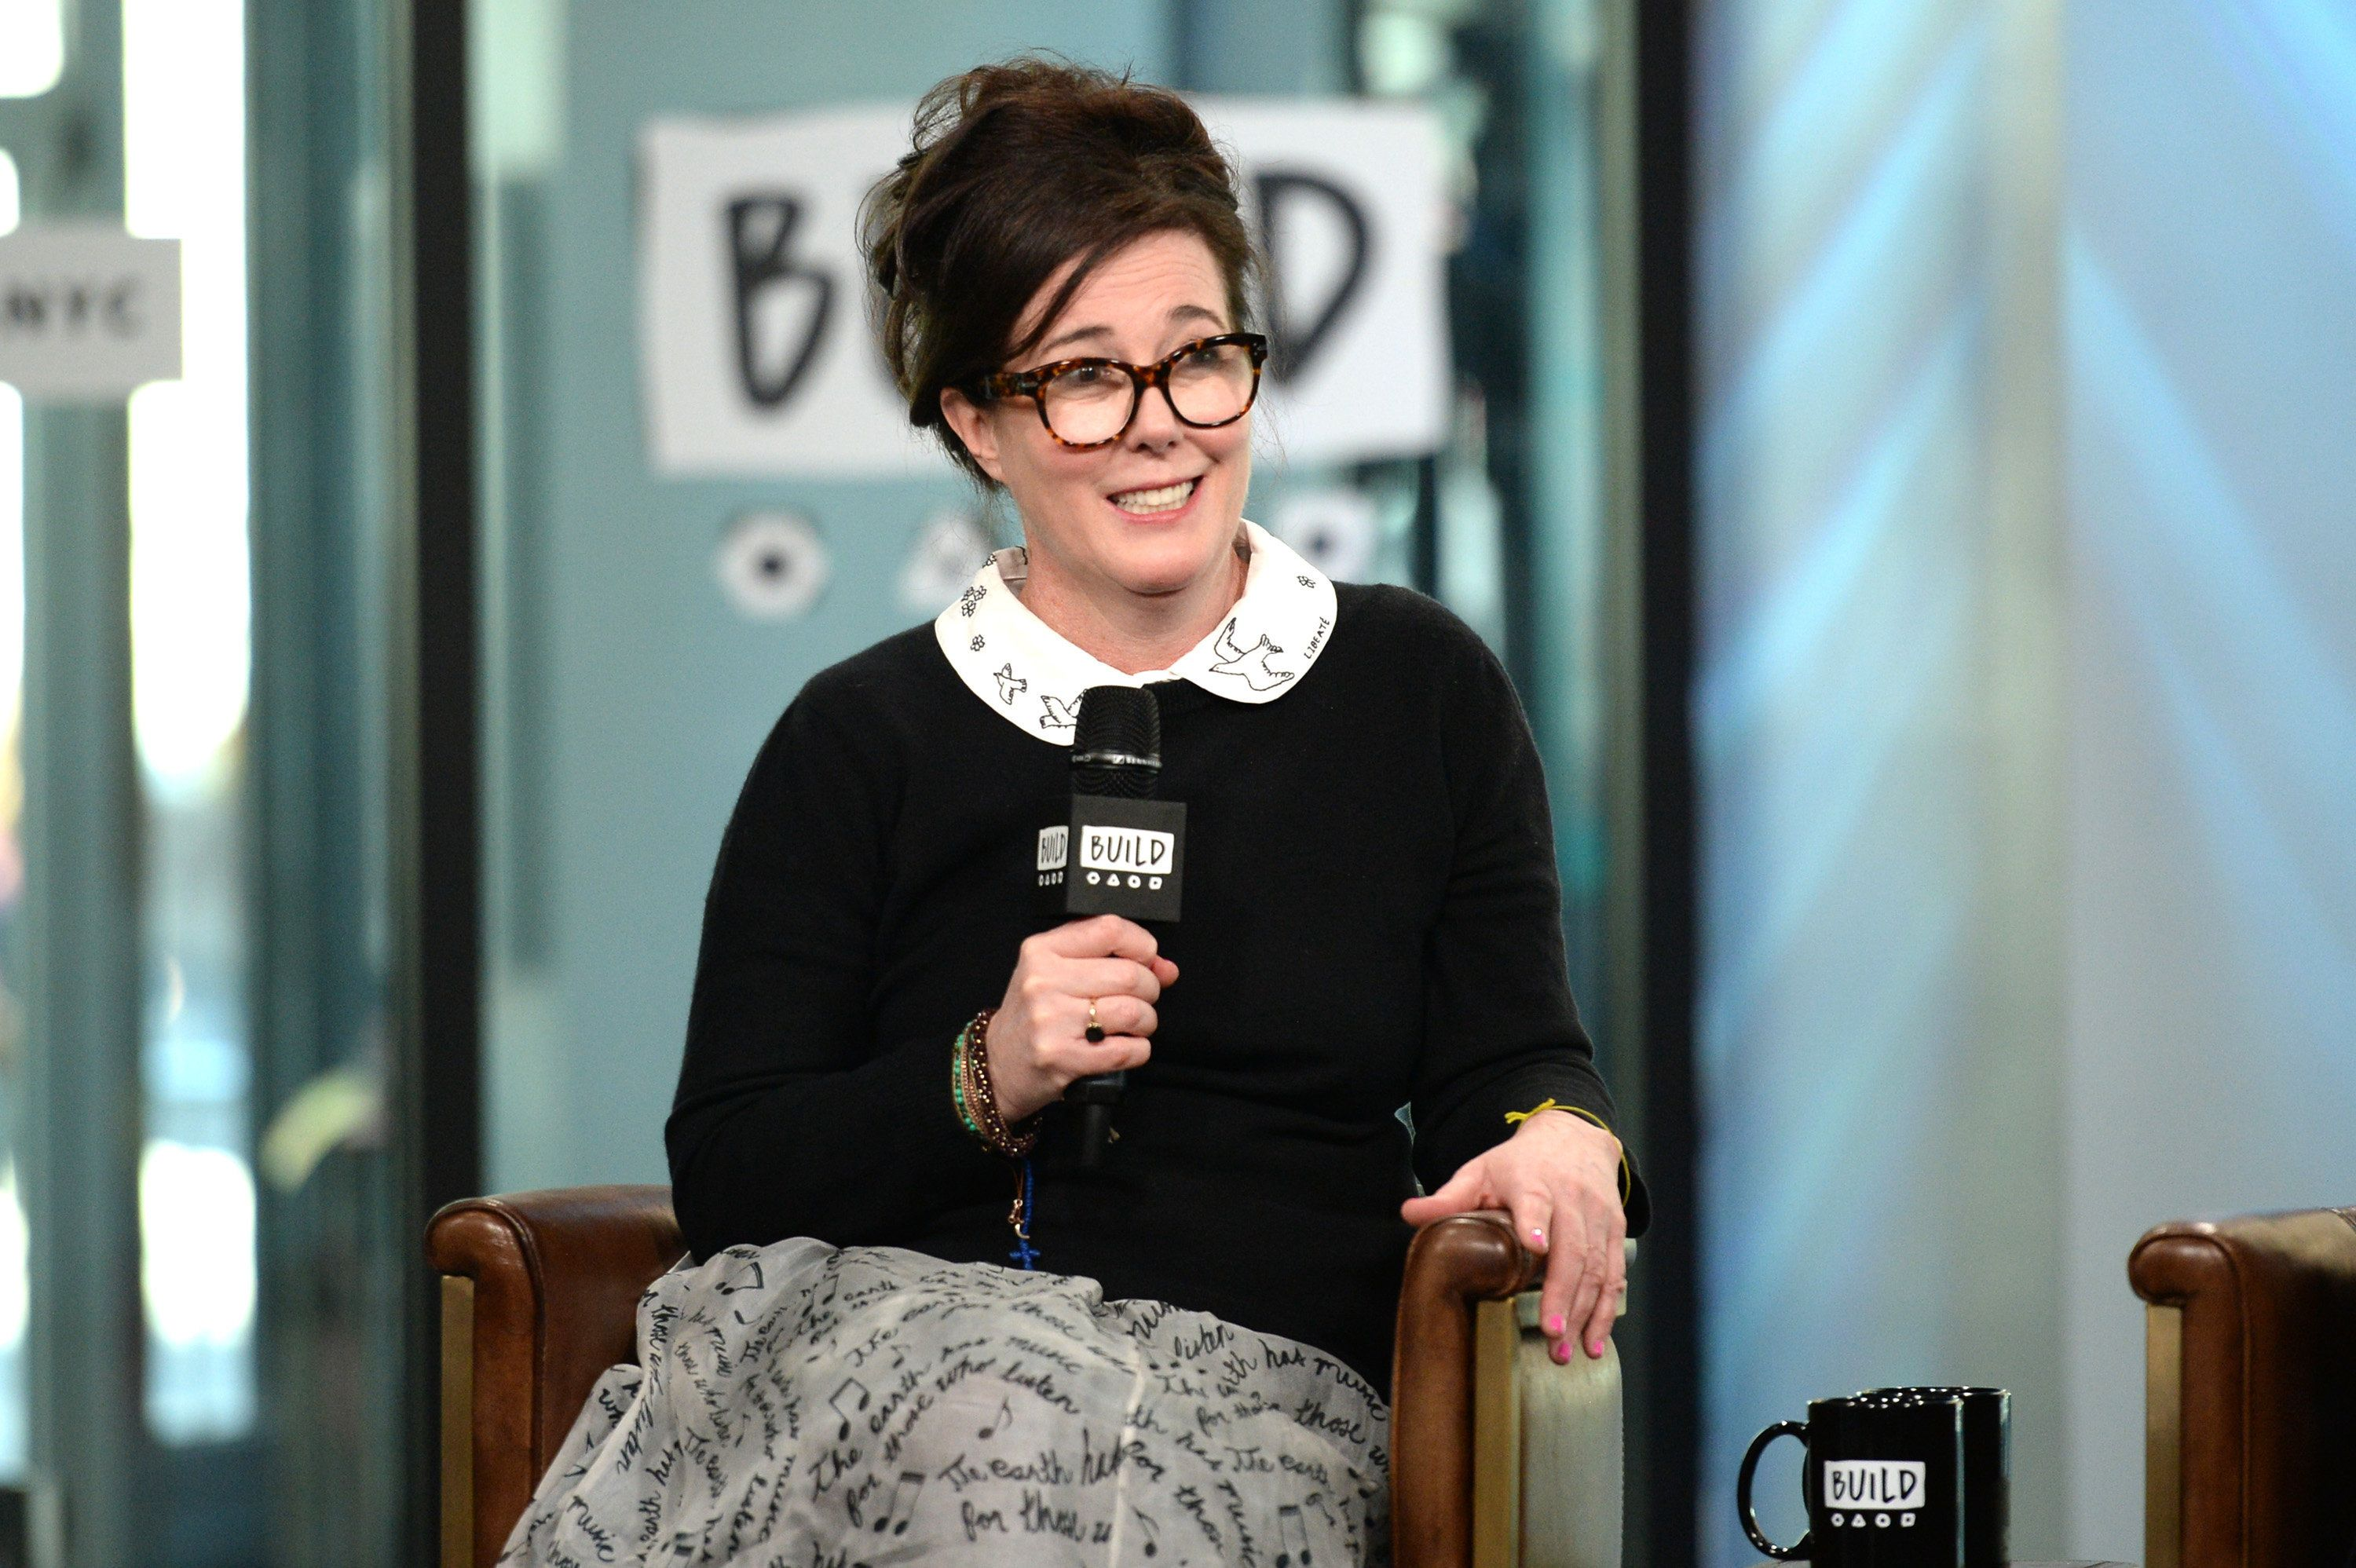 Kate Spade Feeling Unable To Seek Help With Her Mental Health Reminds Us Stigma Affects